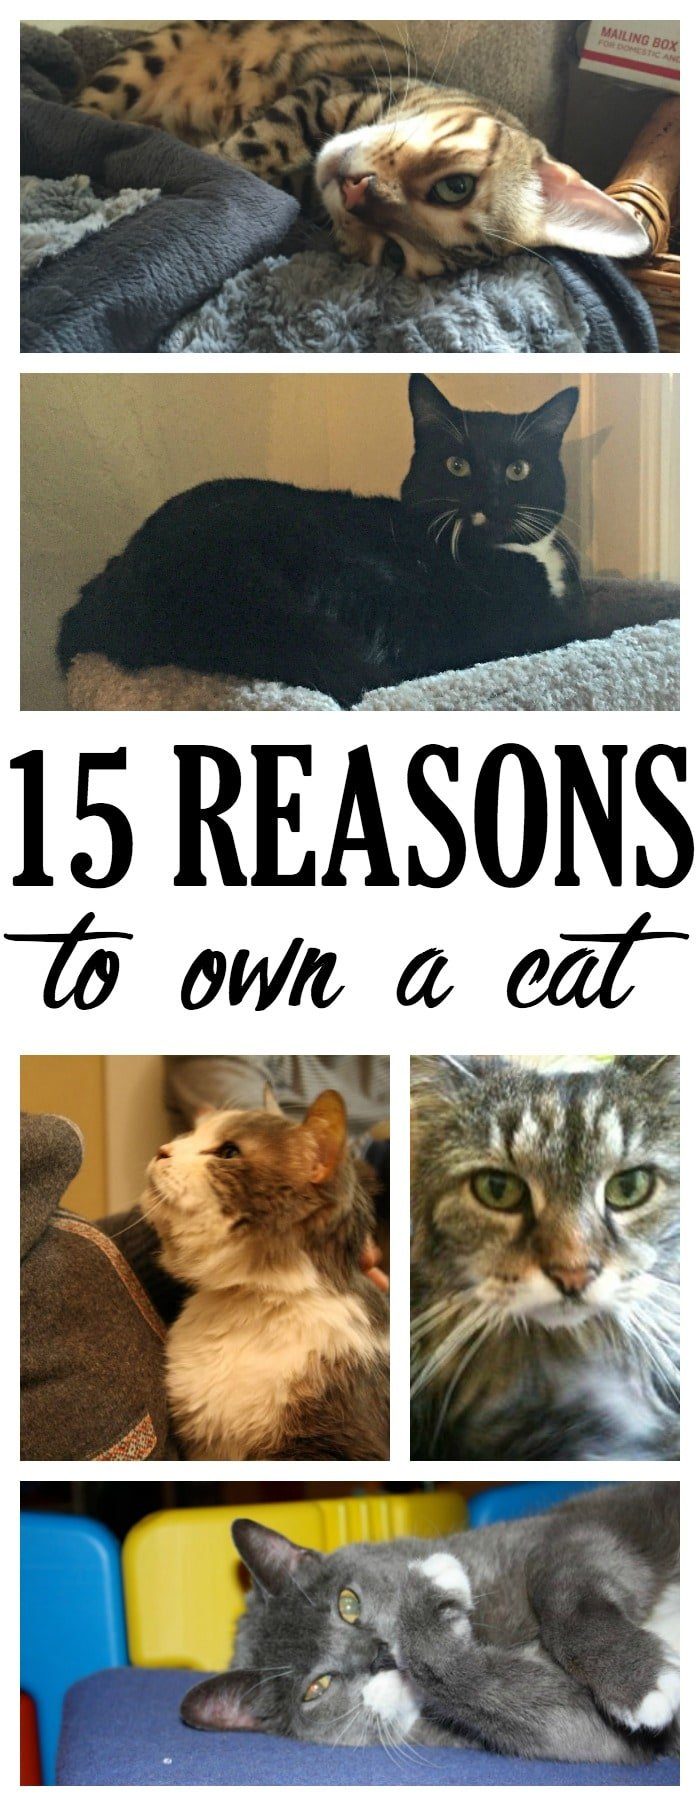 Cats are amazing creatures, and there are so many reasons to own a cat.